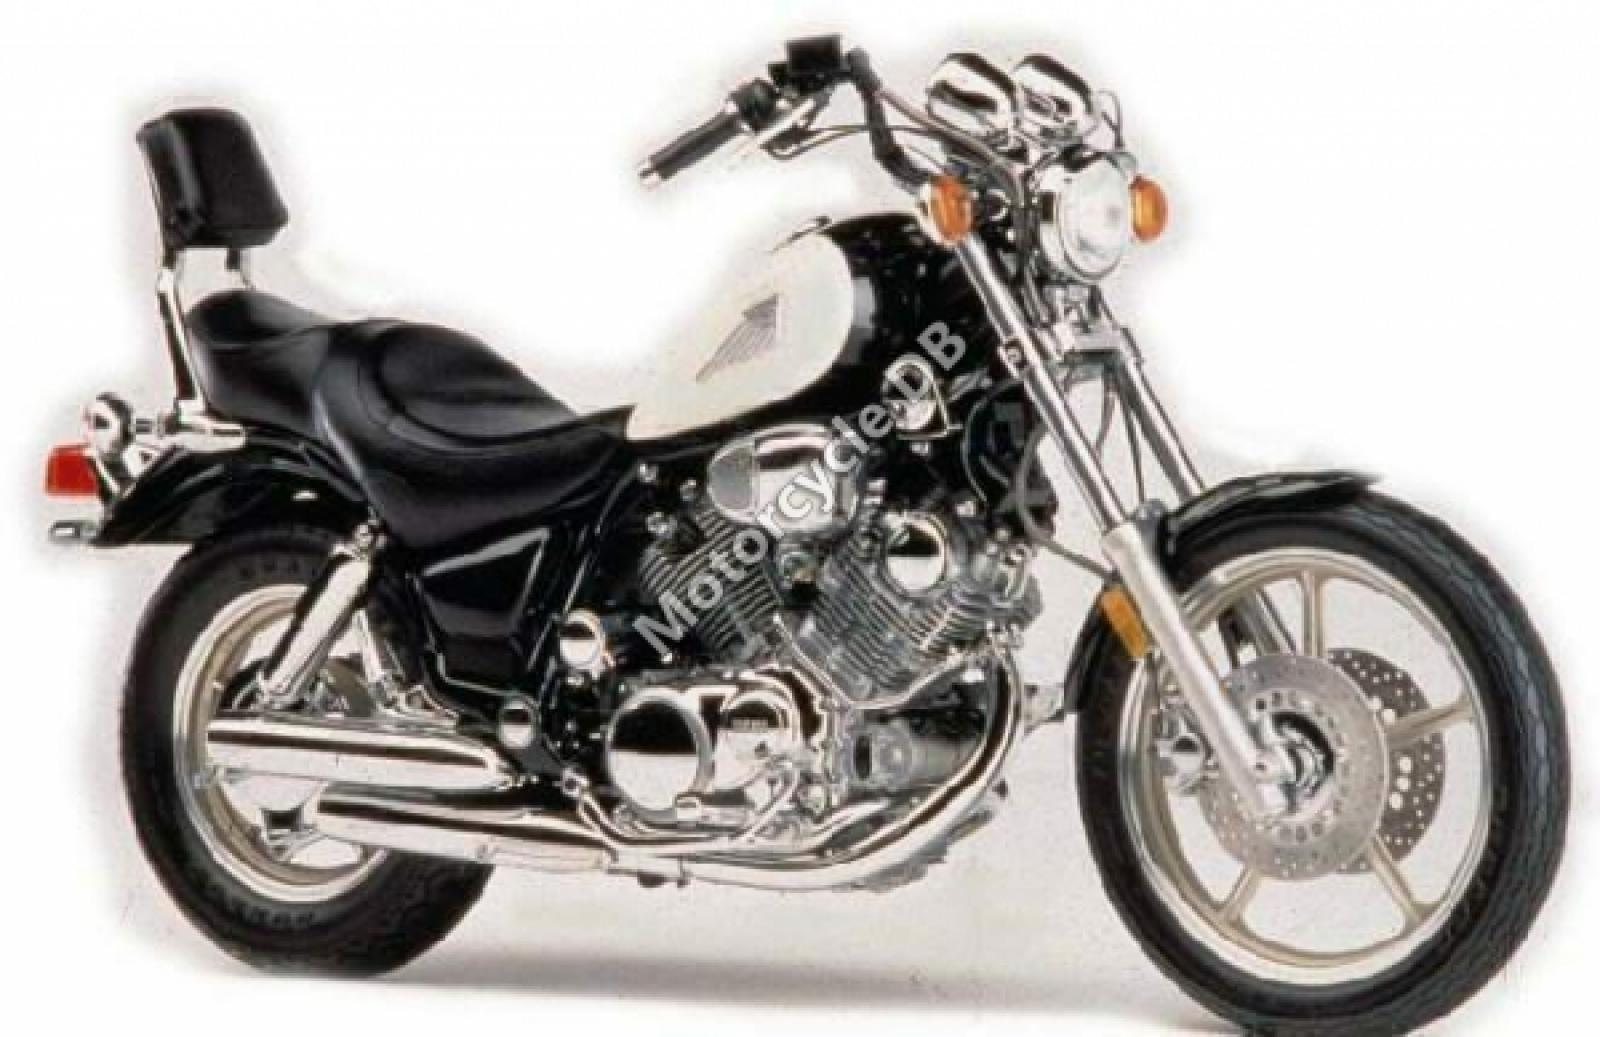 1996 honda shadow 1100 wiring diagram schematics and wiring diagrams honda shadow wiring diagram schematics and diagrams